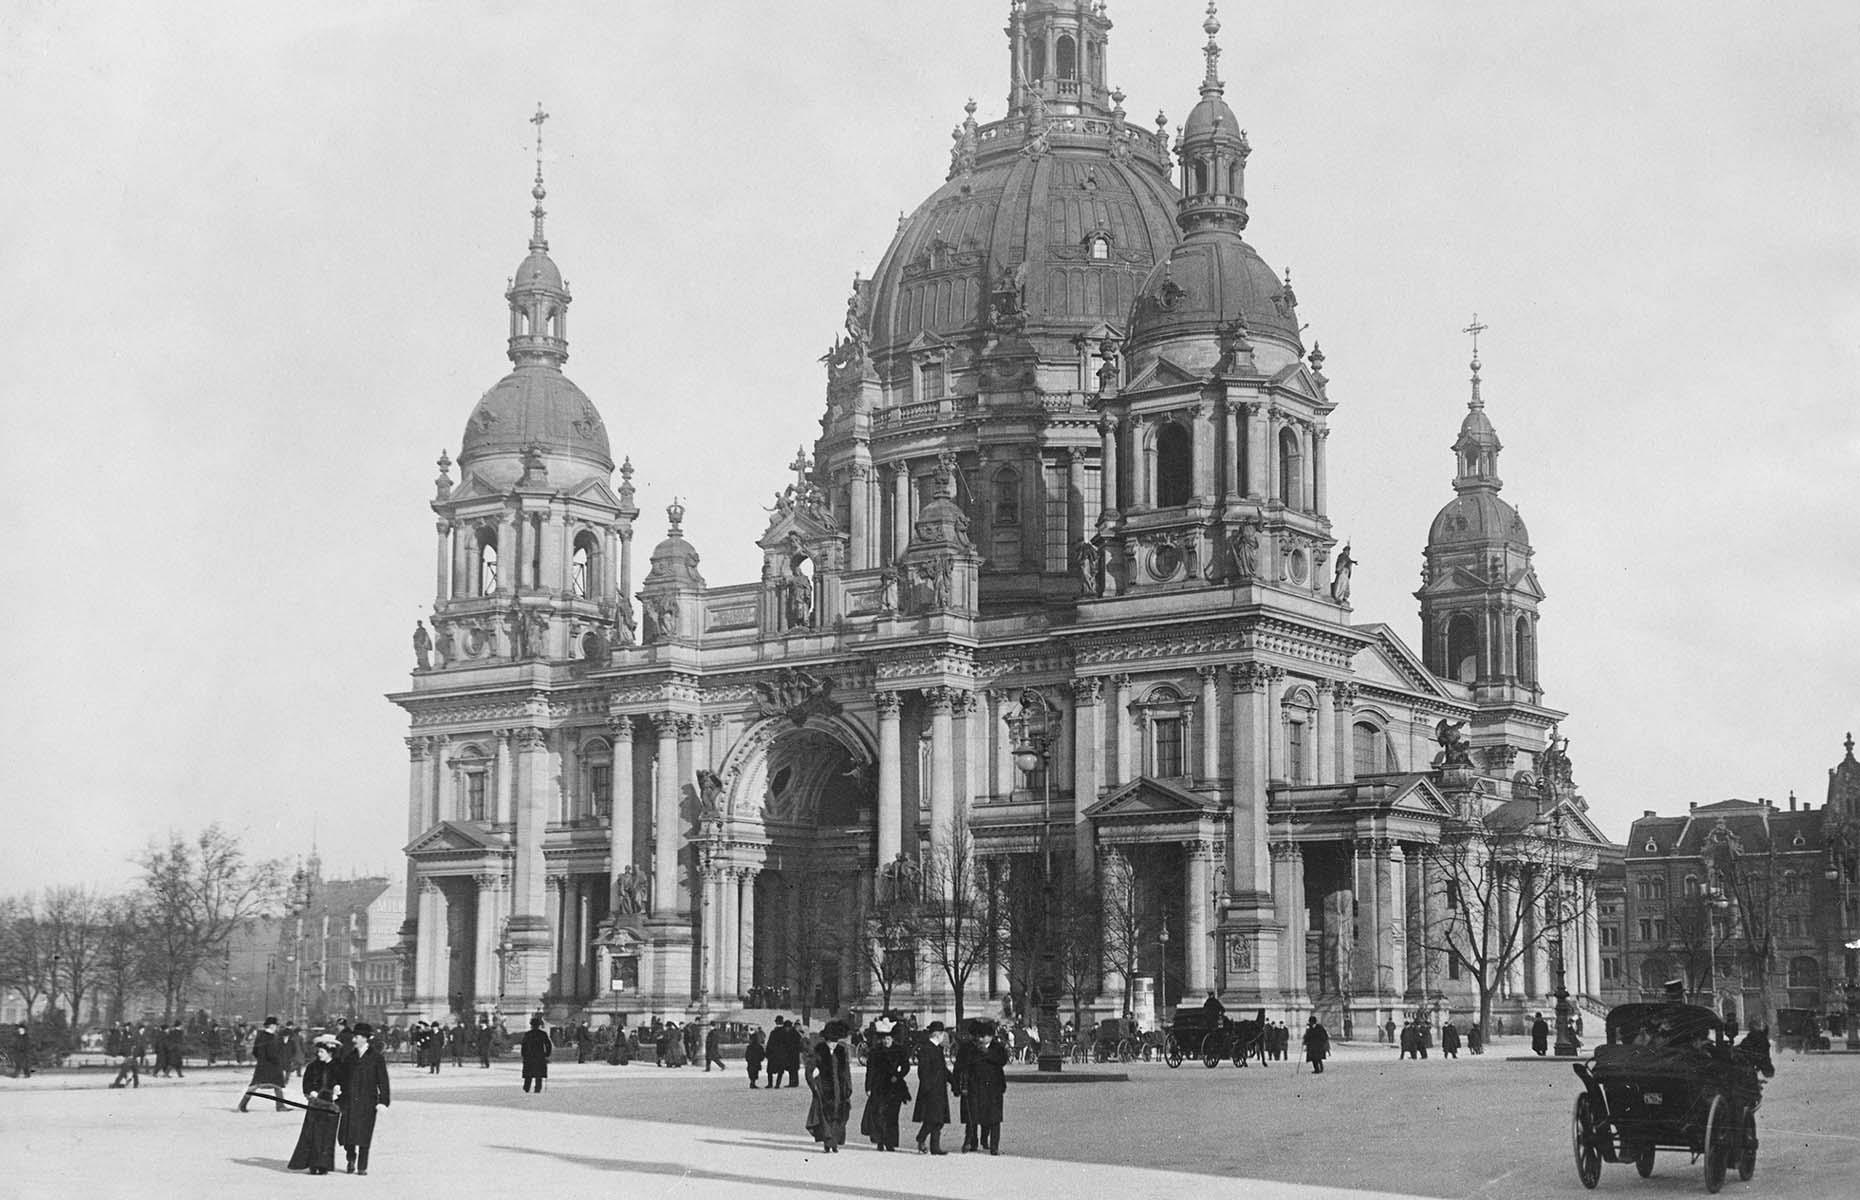 Slide 12 of 27: Consecrated in the 15th century, the Berlin Cathedral, pictured here circa 1890, has had multiple iterations. A significant Berlin landmark both then and now, it was badly damaged in the Second World War and its reconstruction didn't start until 1975. Around the time when this photo was taken, Berlin had become the capital of the newly founded German Empire, which inspired rapid growth and expansion in the city. This, combined with the damage of two World Wars, means it's unsurprising that the city's face has changed so dramatically...